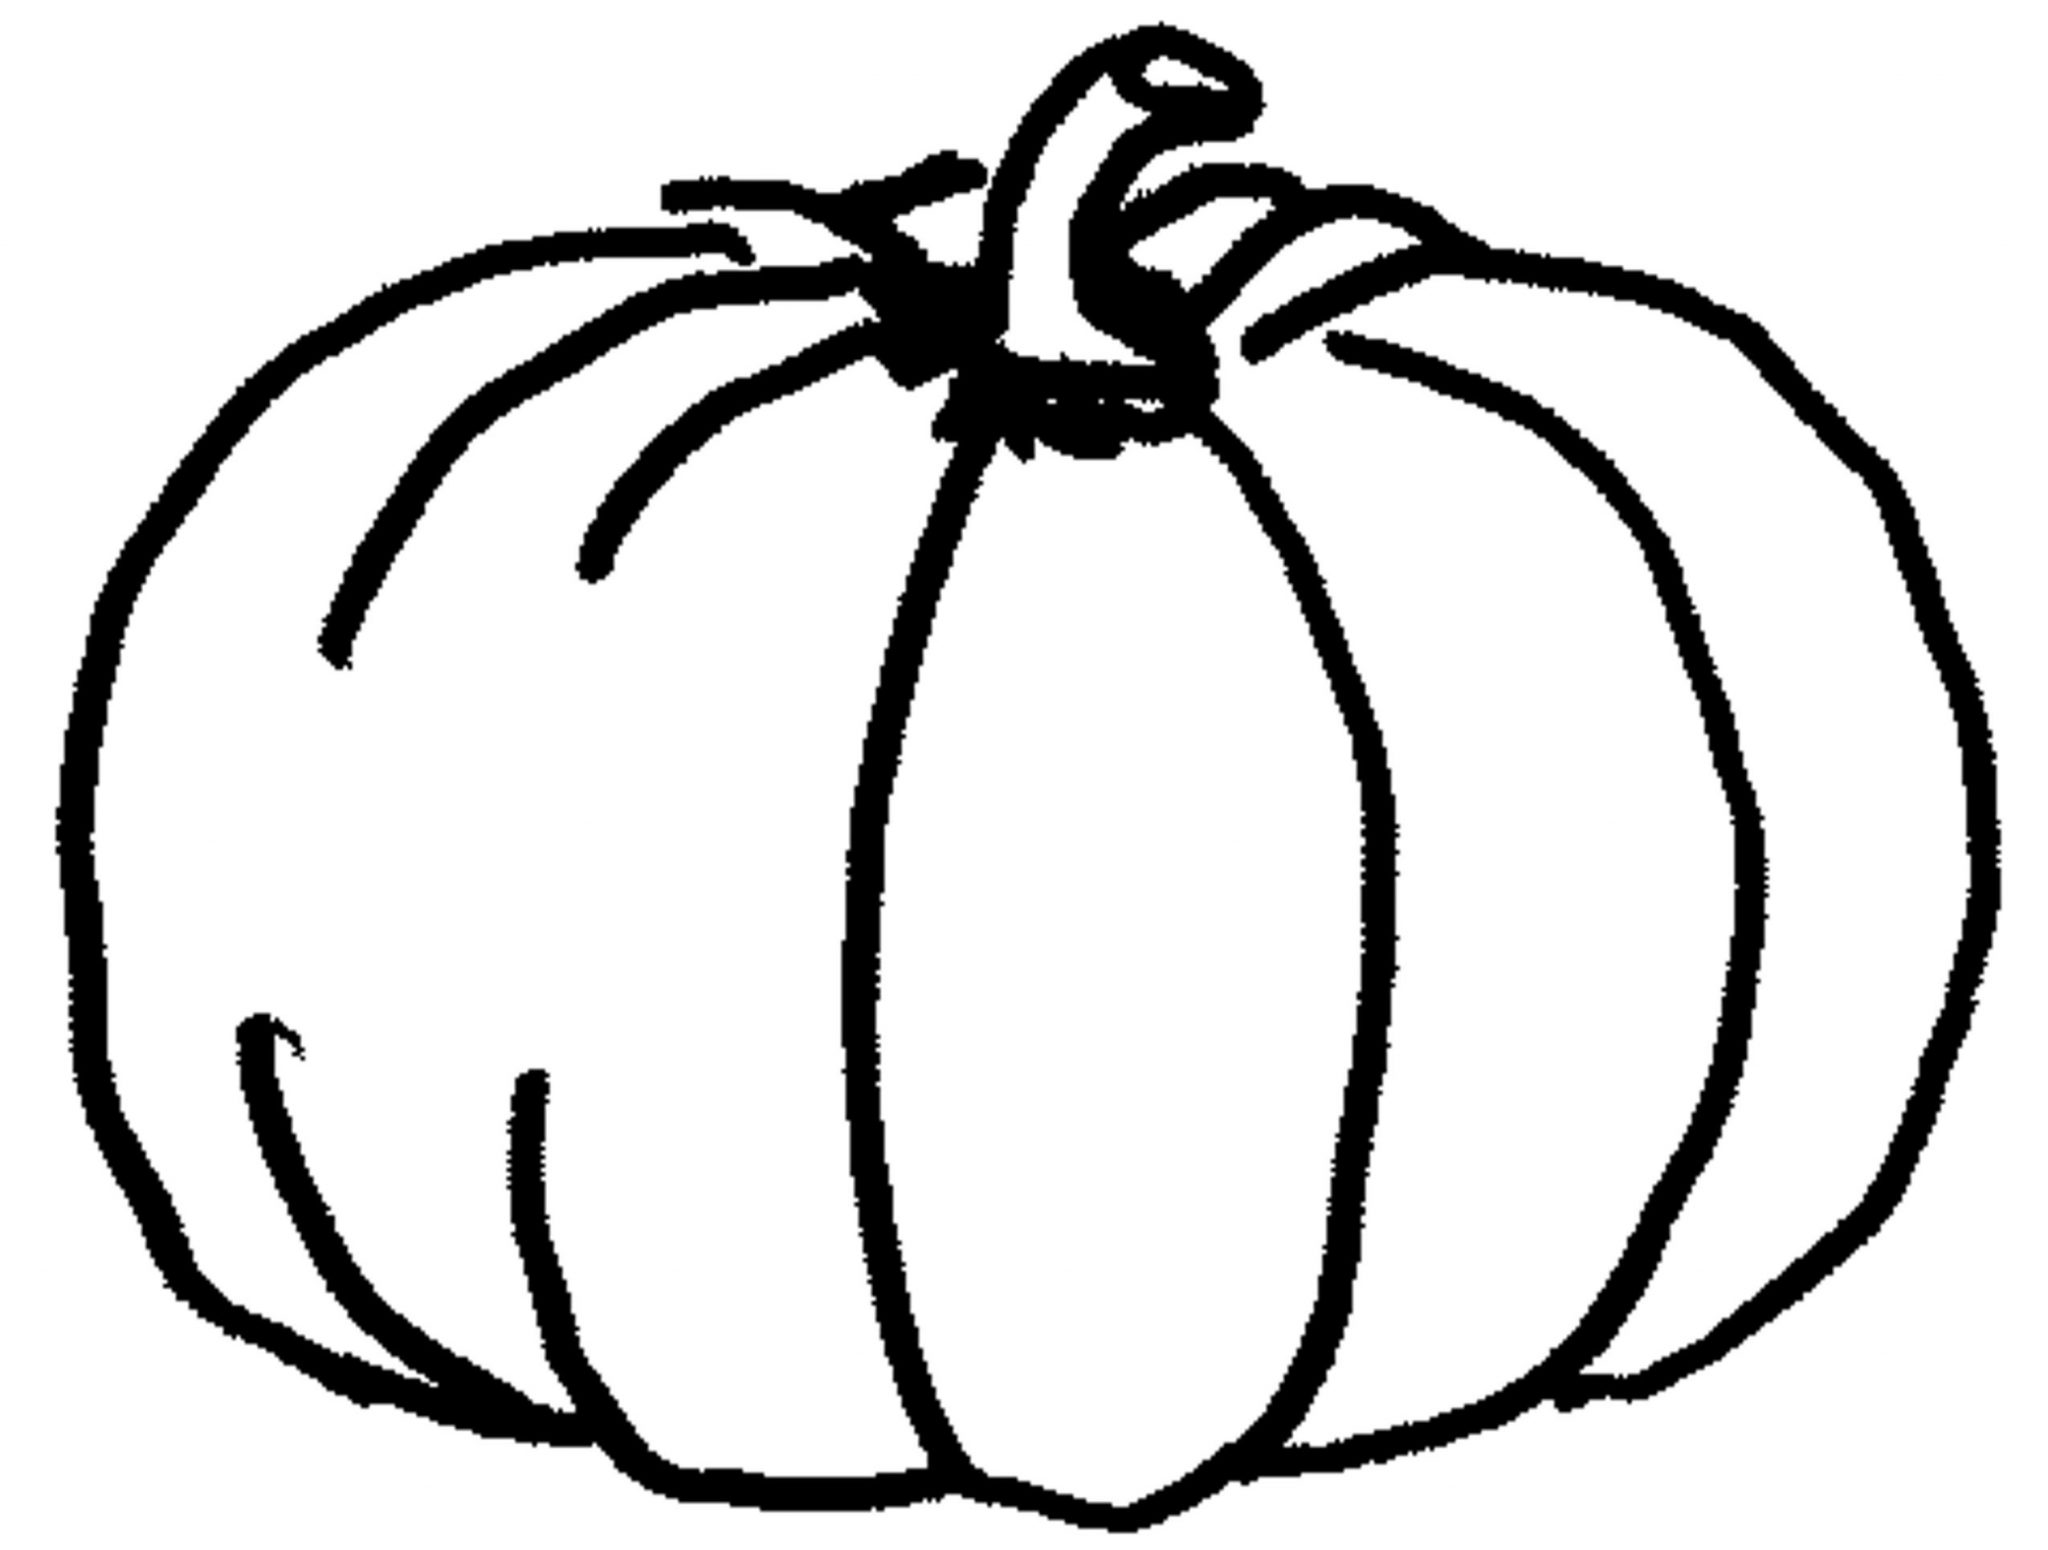 Pumpkin seed coloring pages ~ Print & Download - Pumpkin Coloring Pages and Benefits of ...